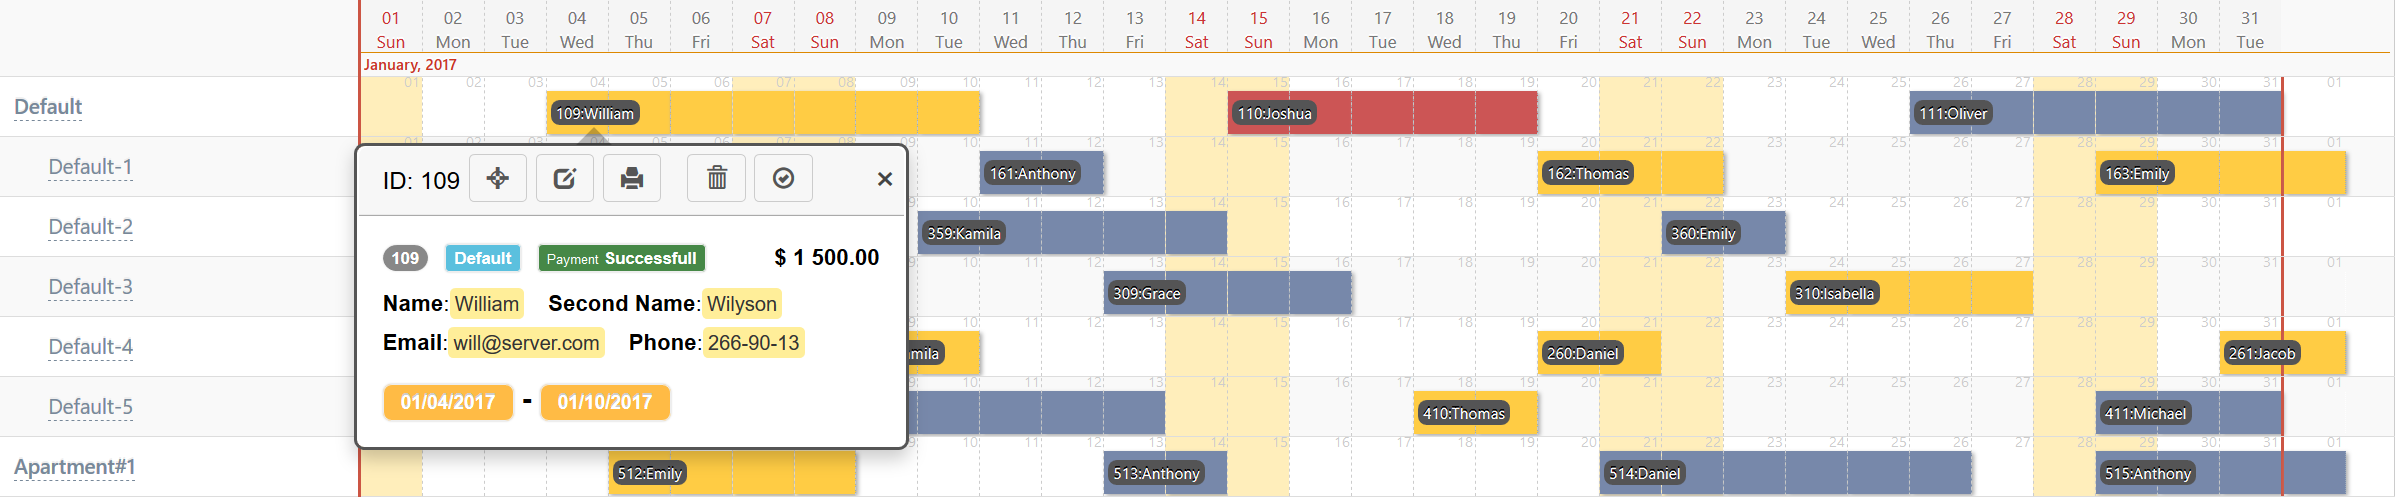 booking-calendar-timeline-view